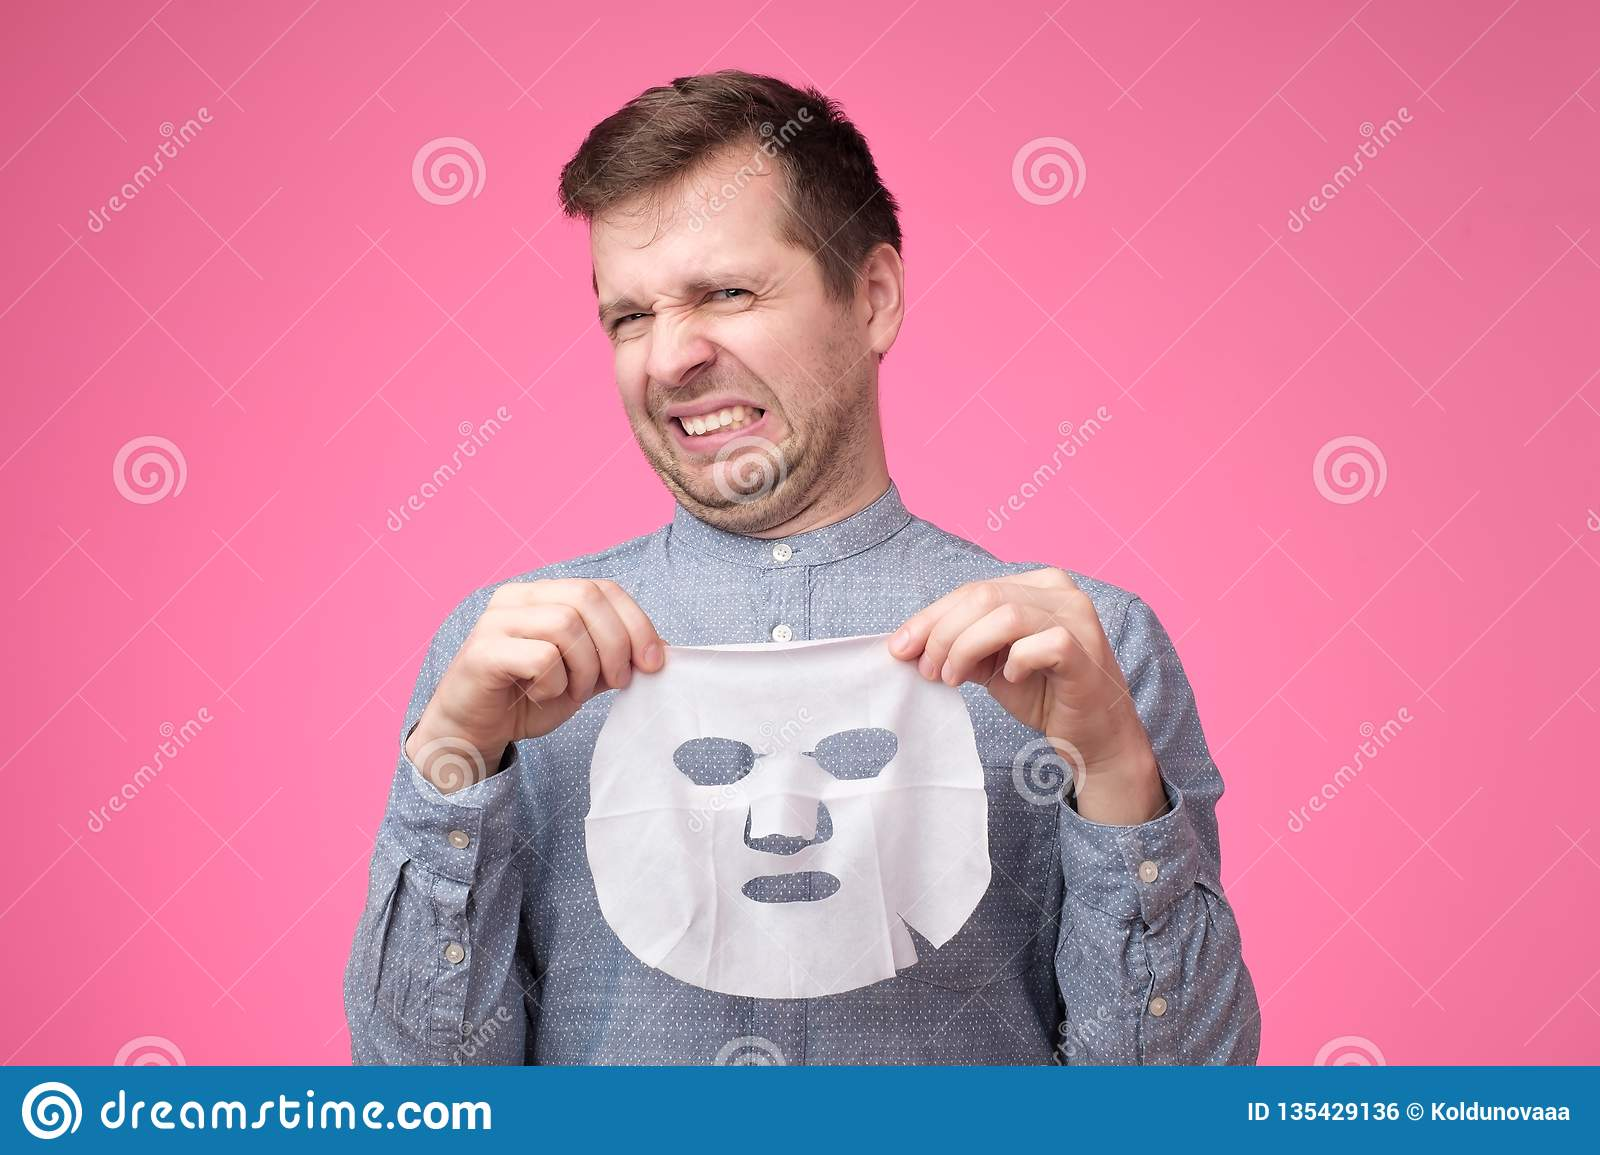 Young handsome man holding cosmetic mask and looking puzzled standing on pink background.